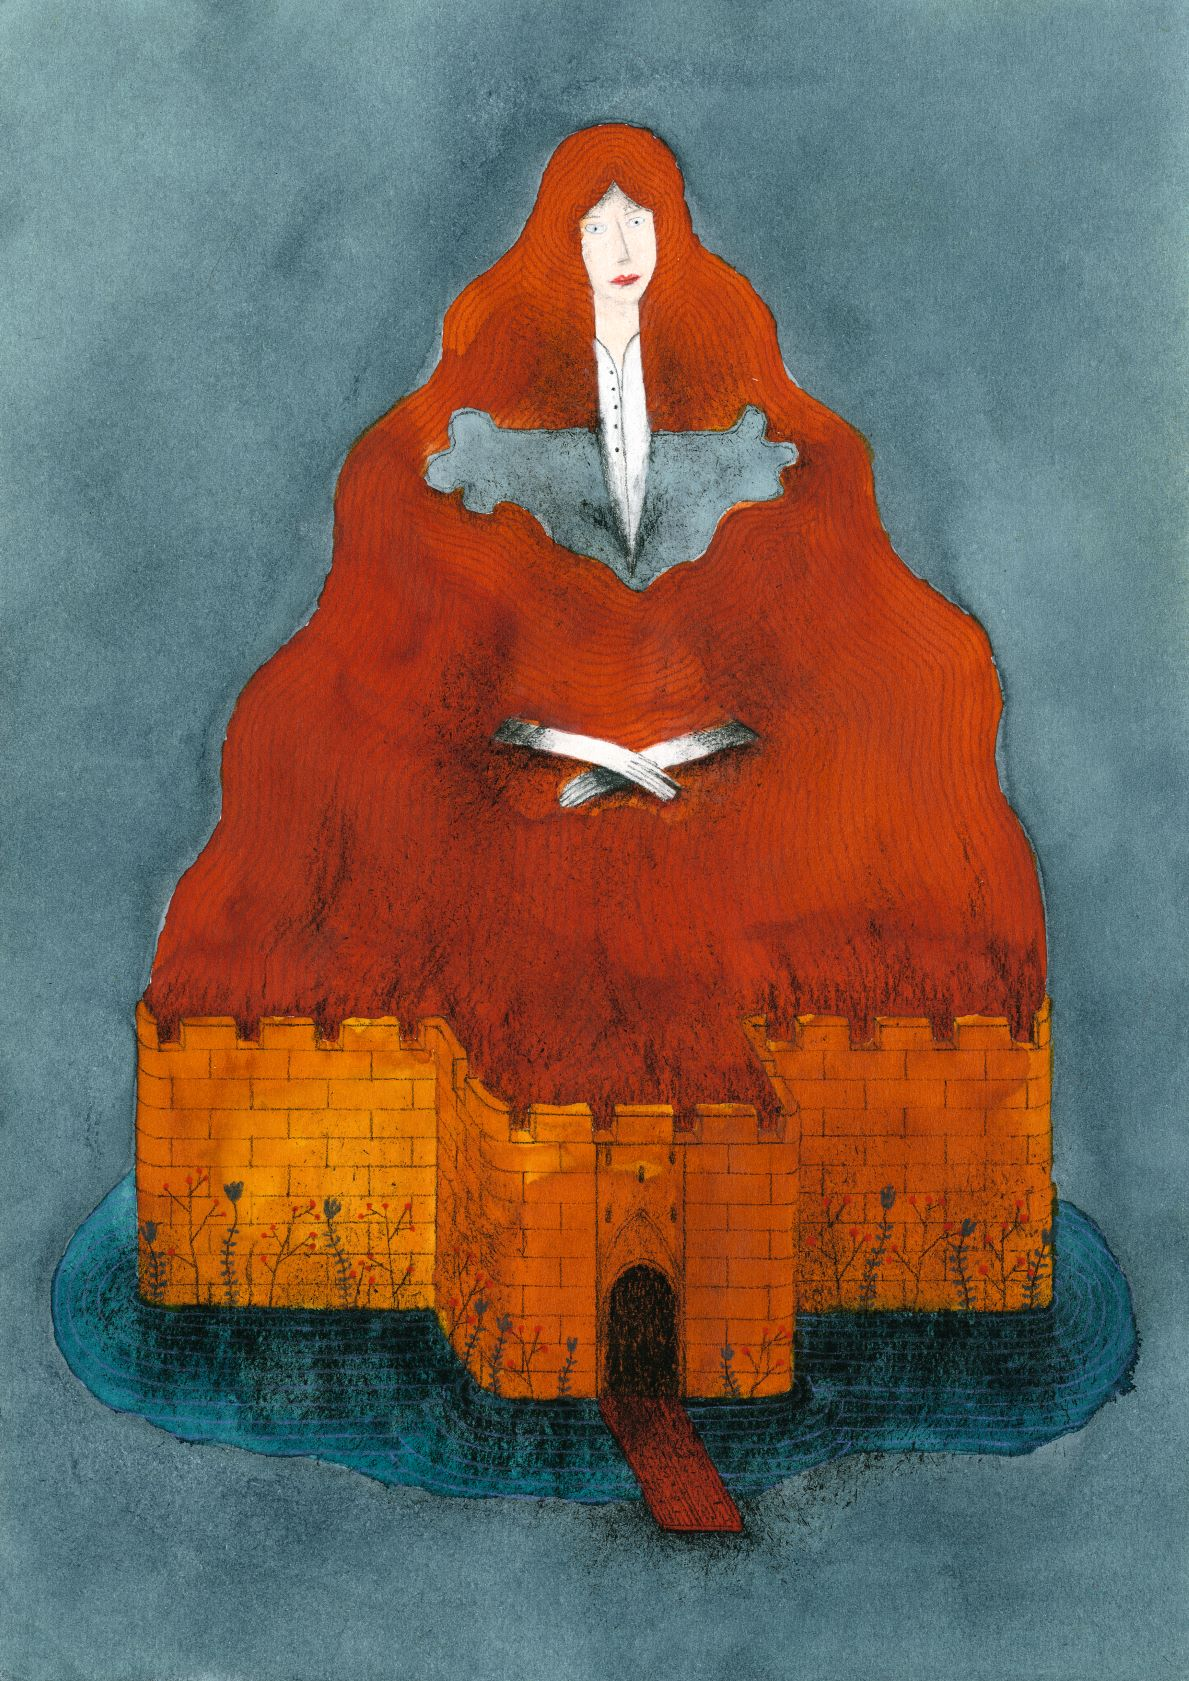 Aquarel of woman and castle